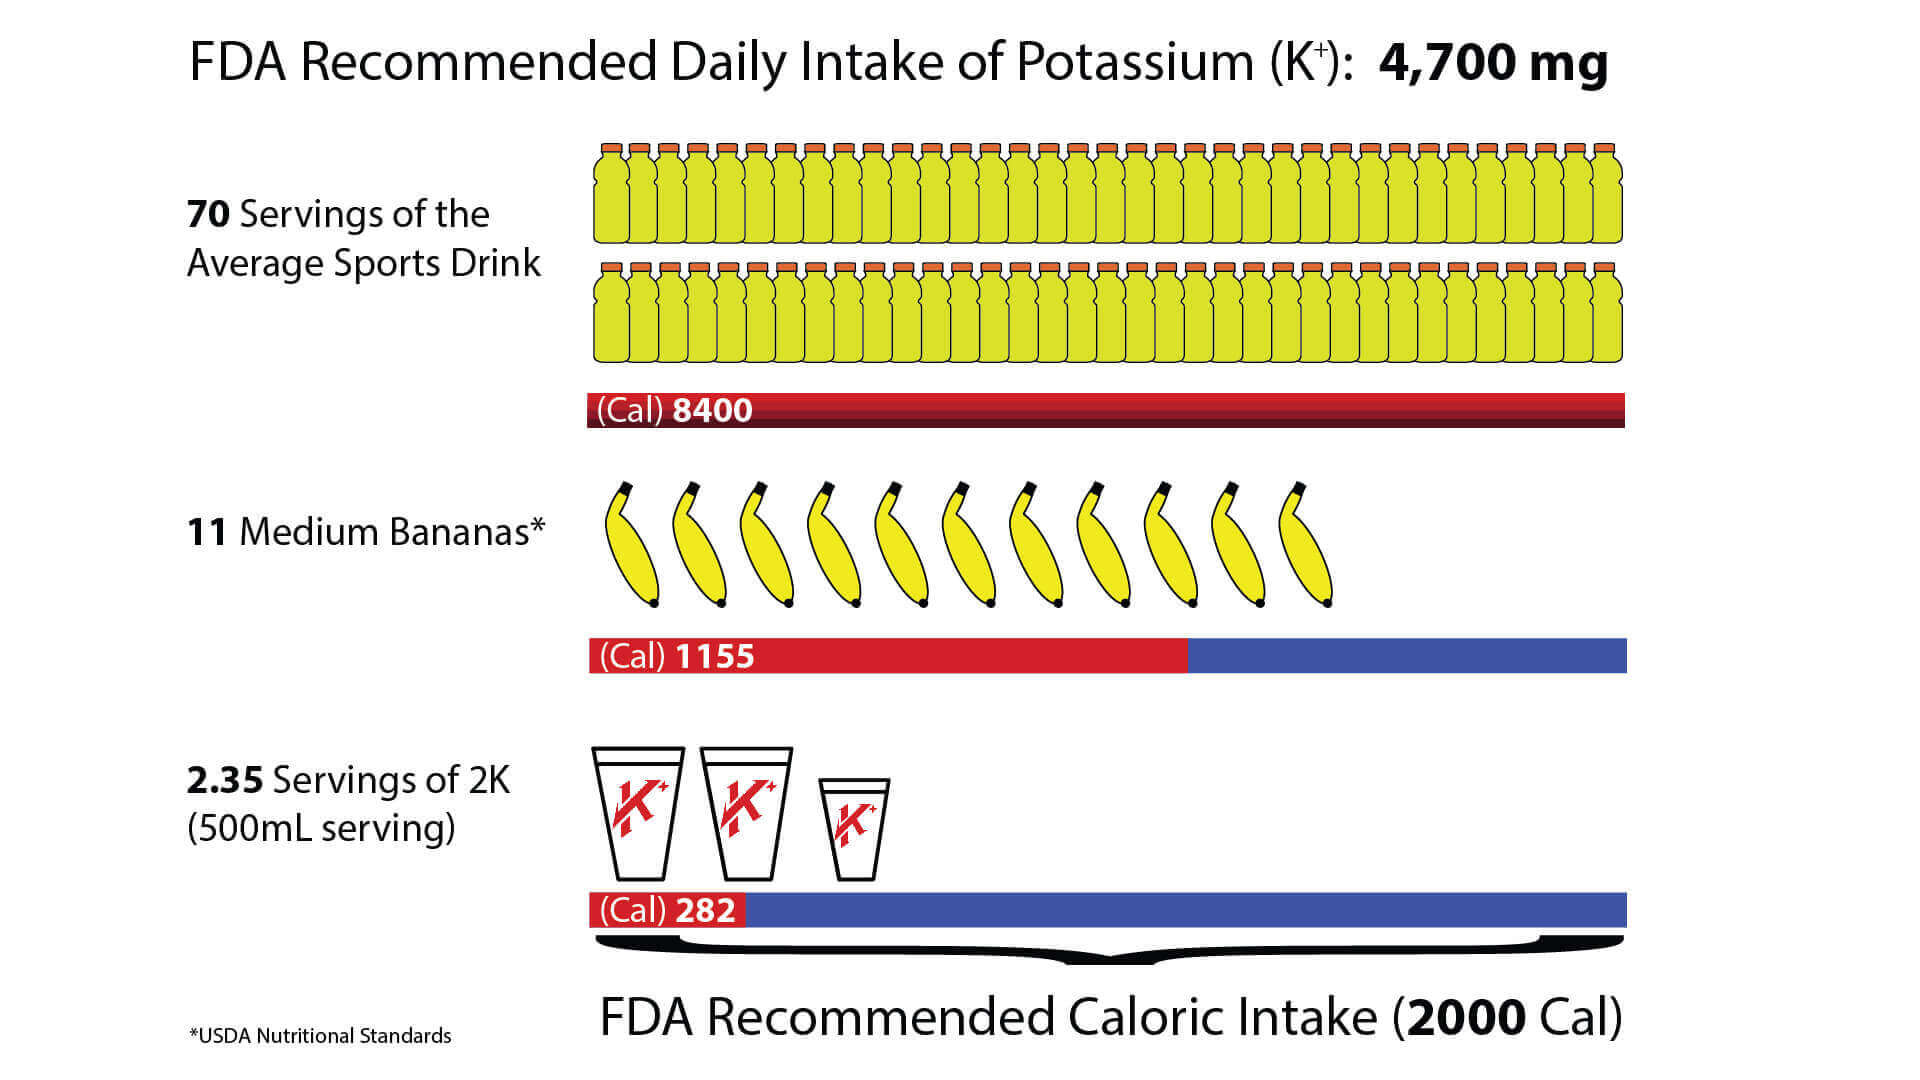 how much food you need to meet your recommended daily potassium intake